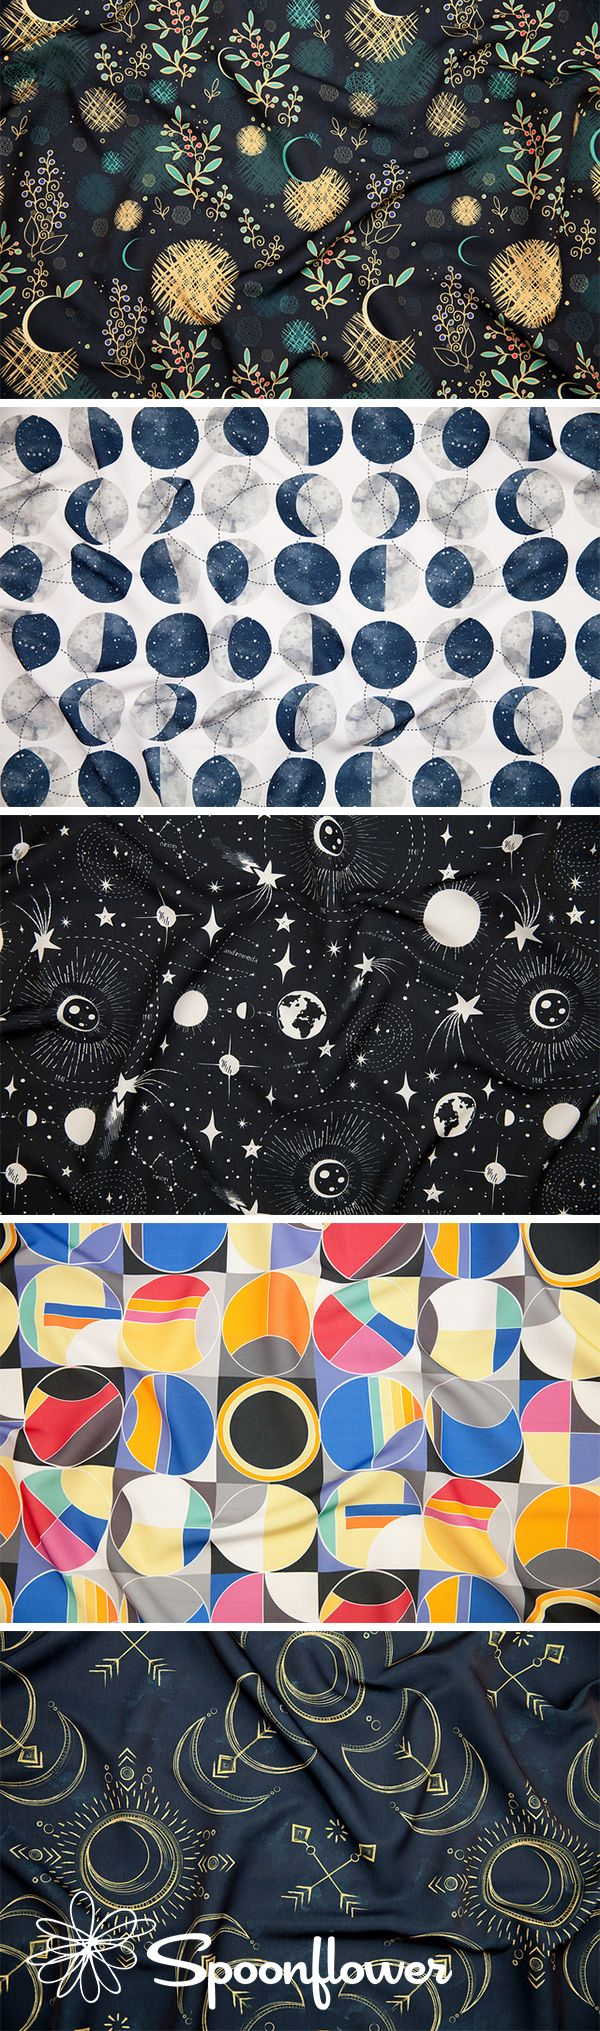 Announcing the Winners of the Solar Eclipse Design Challenge - It's recommended that you don't stare directly at a solar eclipse but we can't take our eyes away from this week's Solar Eclipse design challenge winner, Moon Phase Spot by Hannah Bowman (mottle&daub in the Marketplace)!  These beautiful solar eclipse inspired designs are perfect for DIY home decor, gift wrap, and wallpaper! #fabric #solar #sun #solarsystem #fabrics #design #challenge #designer #surfacedesign